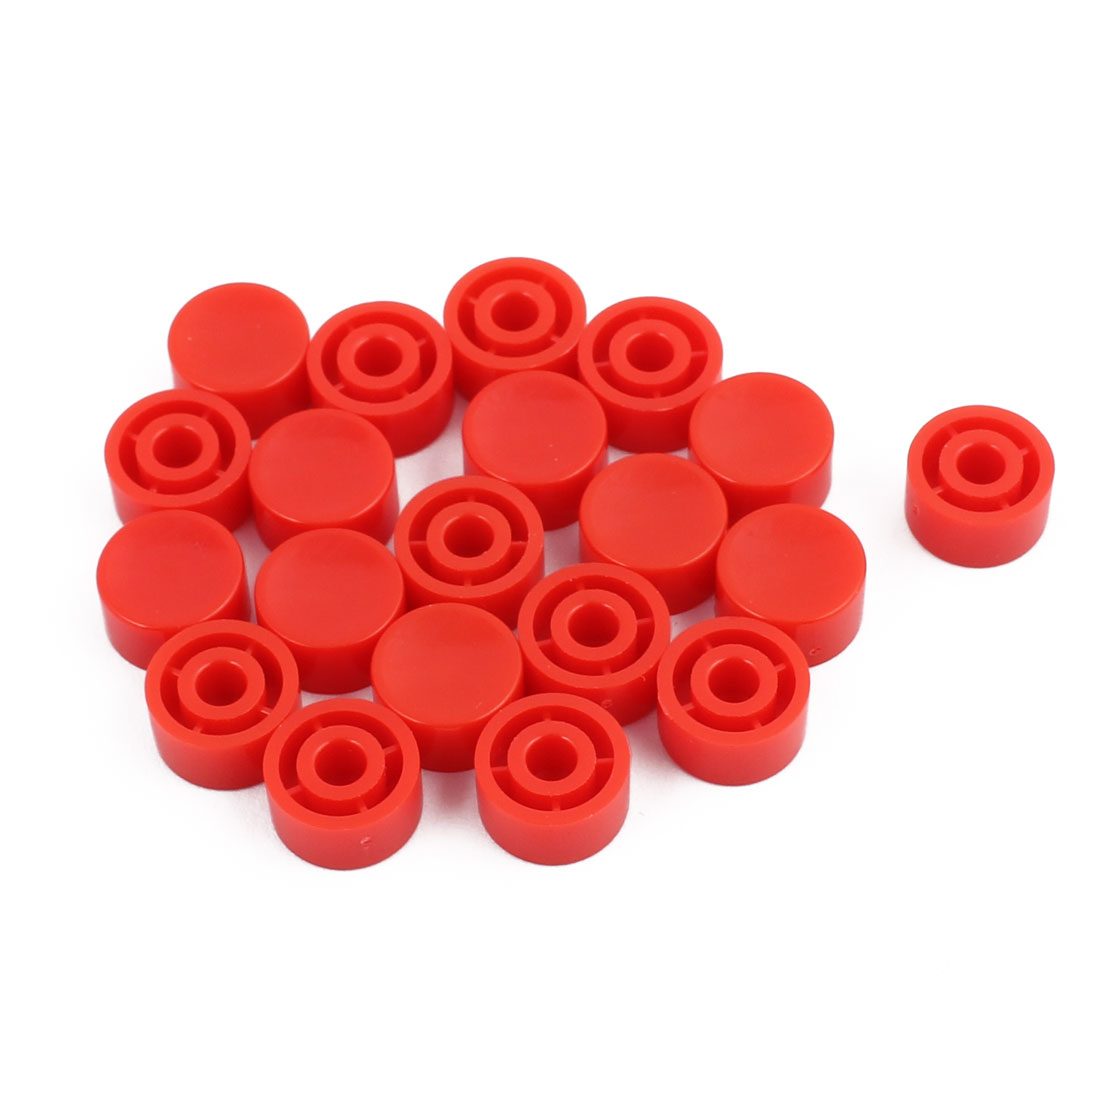 20Pcs Round Shaped Tactile Button Caps Covers f 6mmx6mm Tact Switch